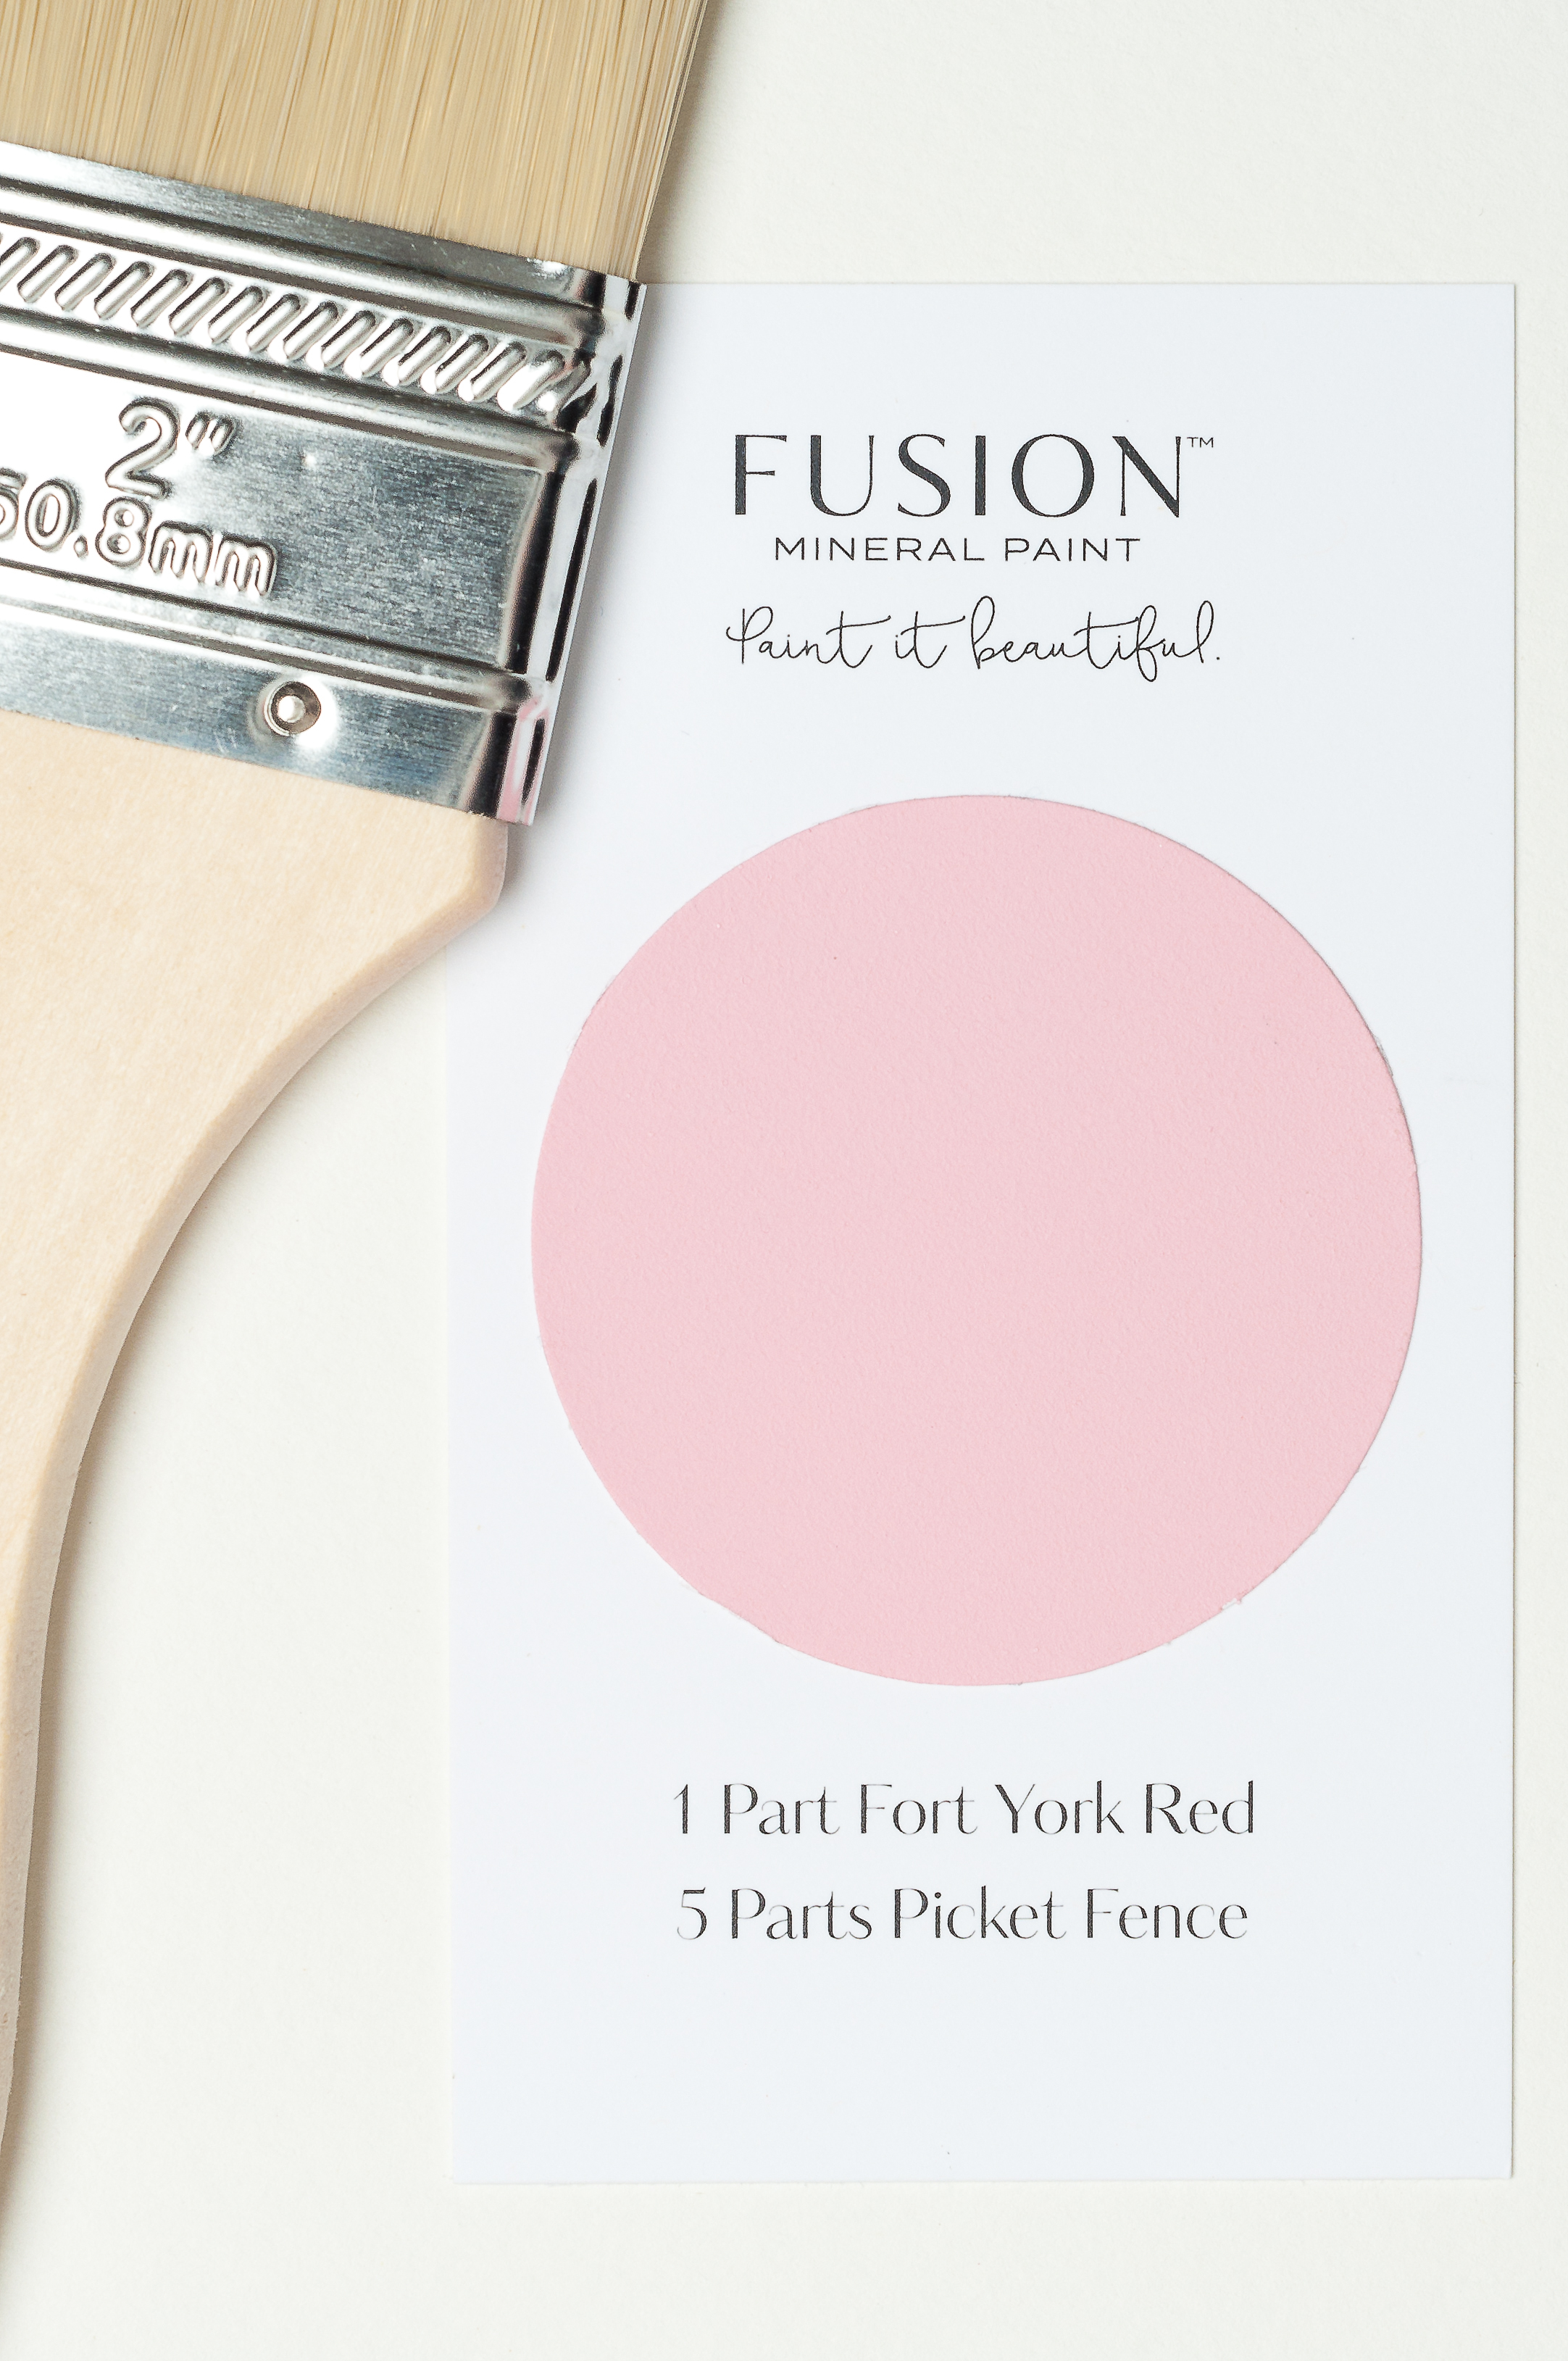 By using a simple recipe, it is easy to mix your own custom colours of Fusion Mineral Paint. A mixture of Fort York Red and Picket Fence makes this lovely pink colour.